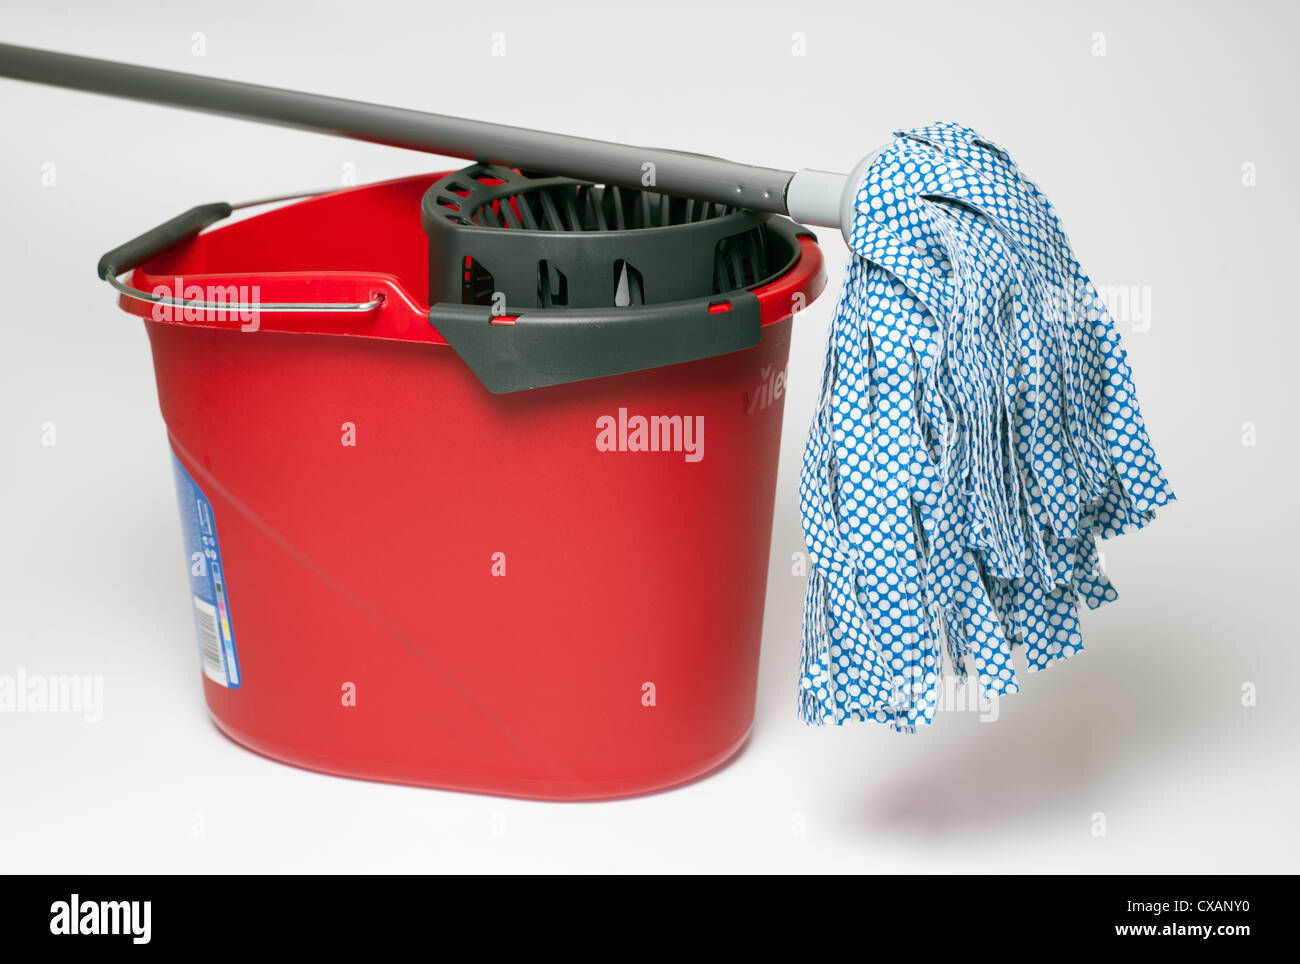 Red mop bucket and mop - Stock Image